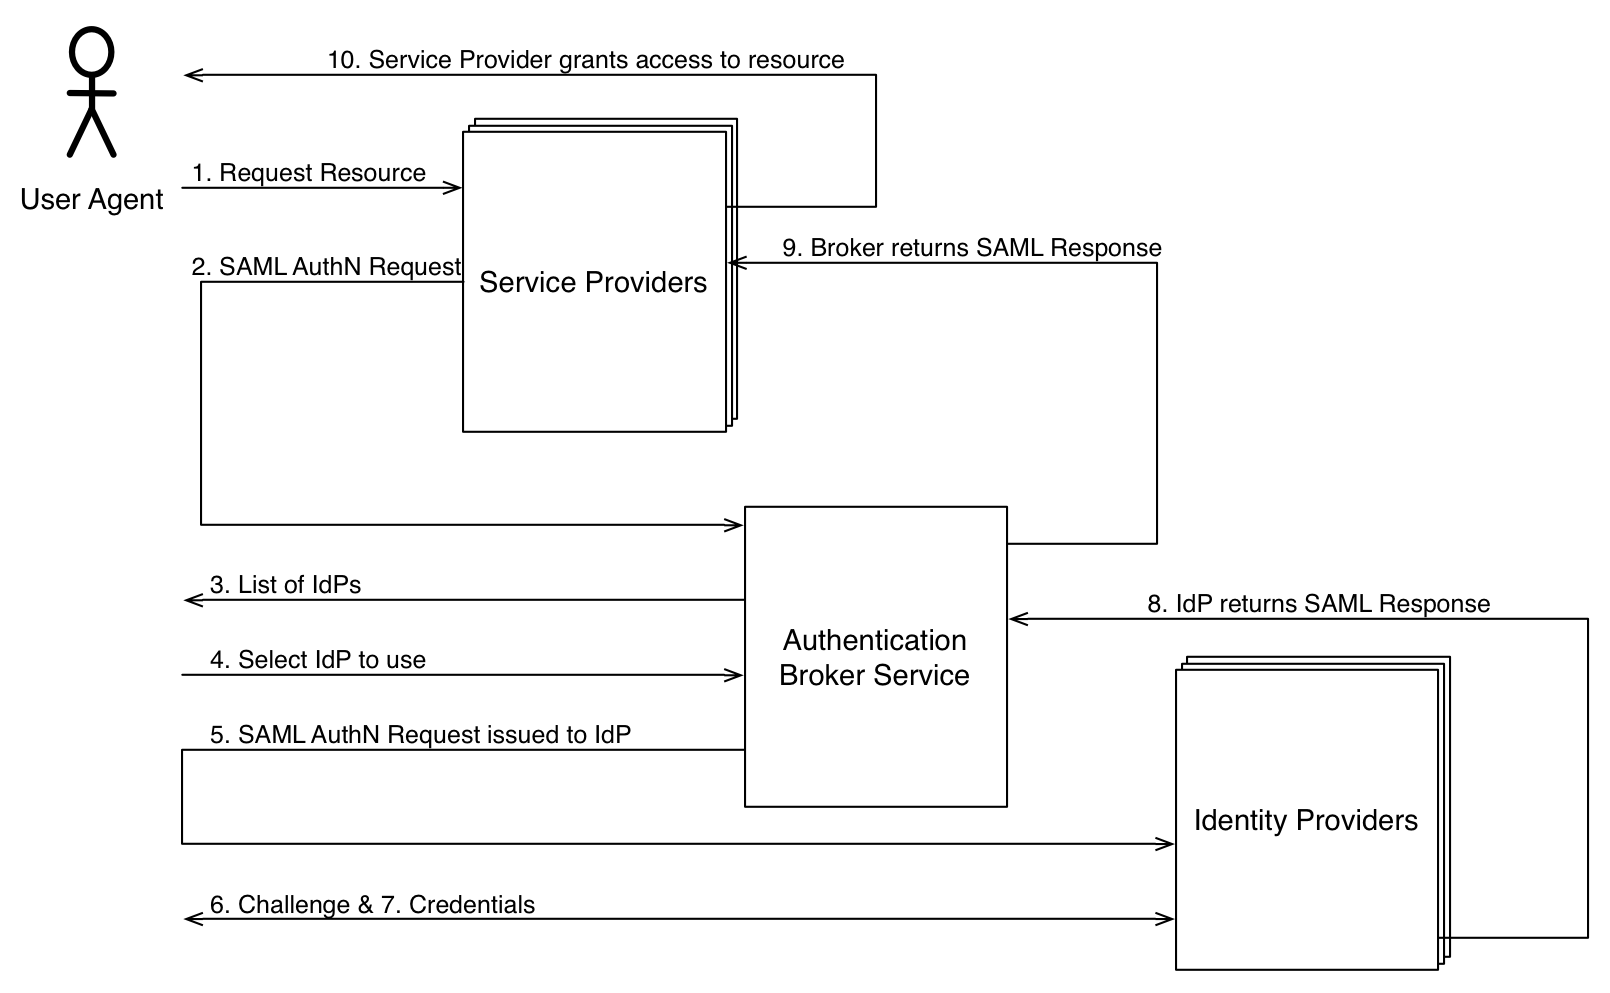 saml hub service identity broker service in saml supporting multiple identity